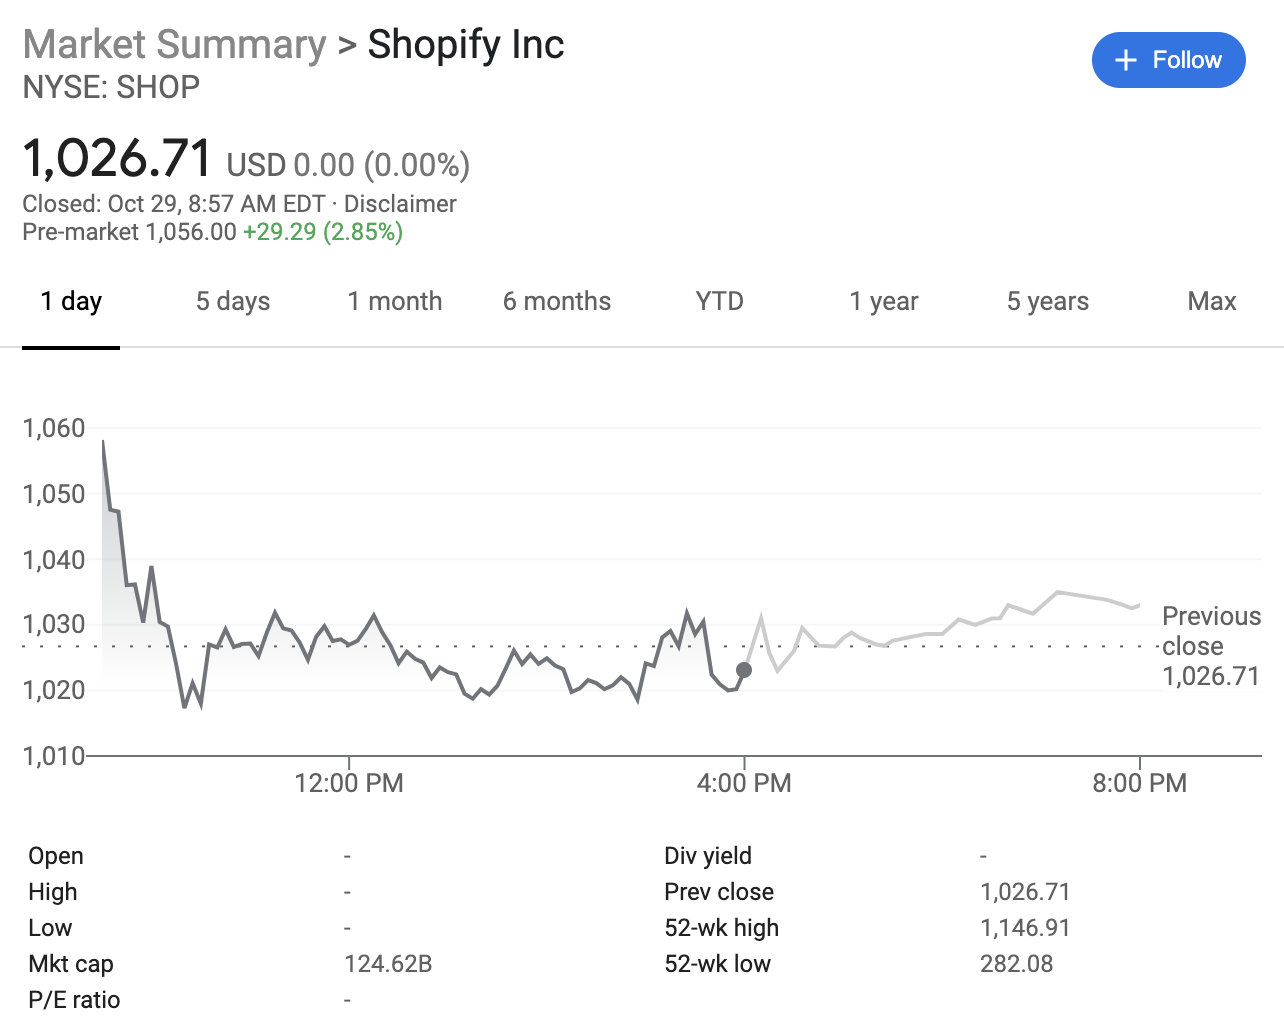 Shopify stock is up in pre-market trading as earnings blow past estimates